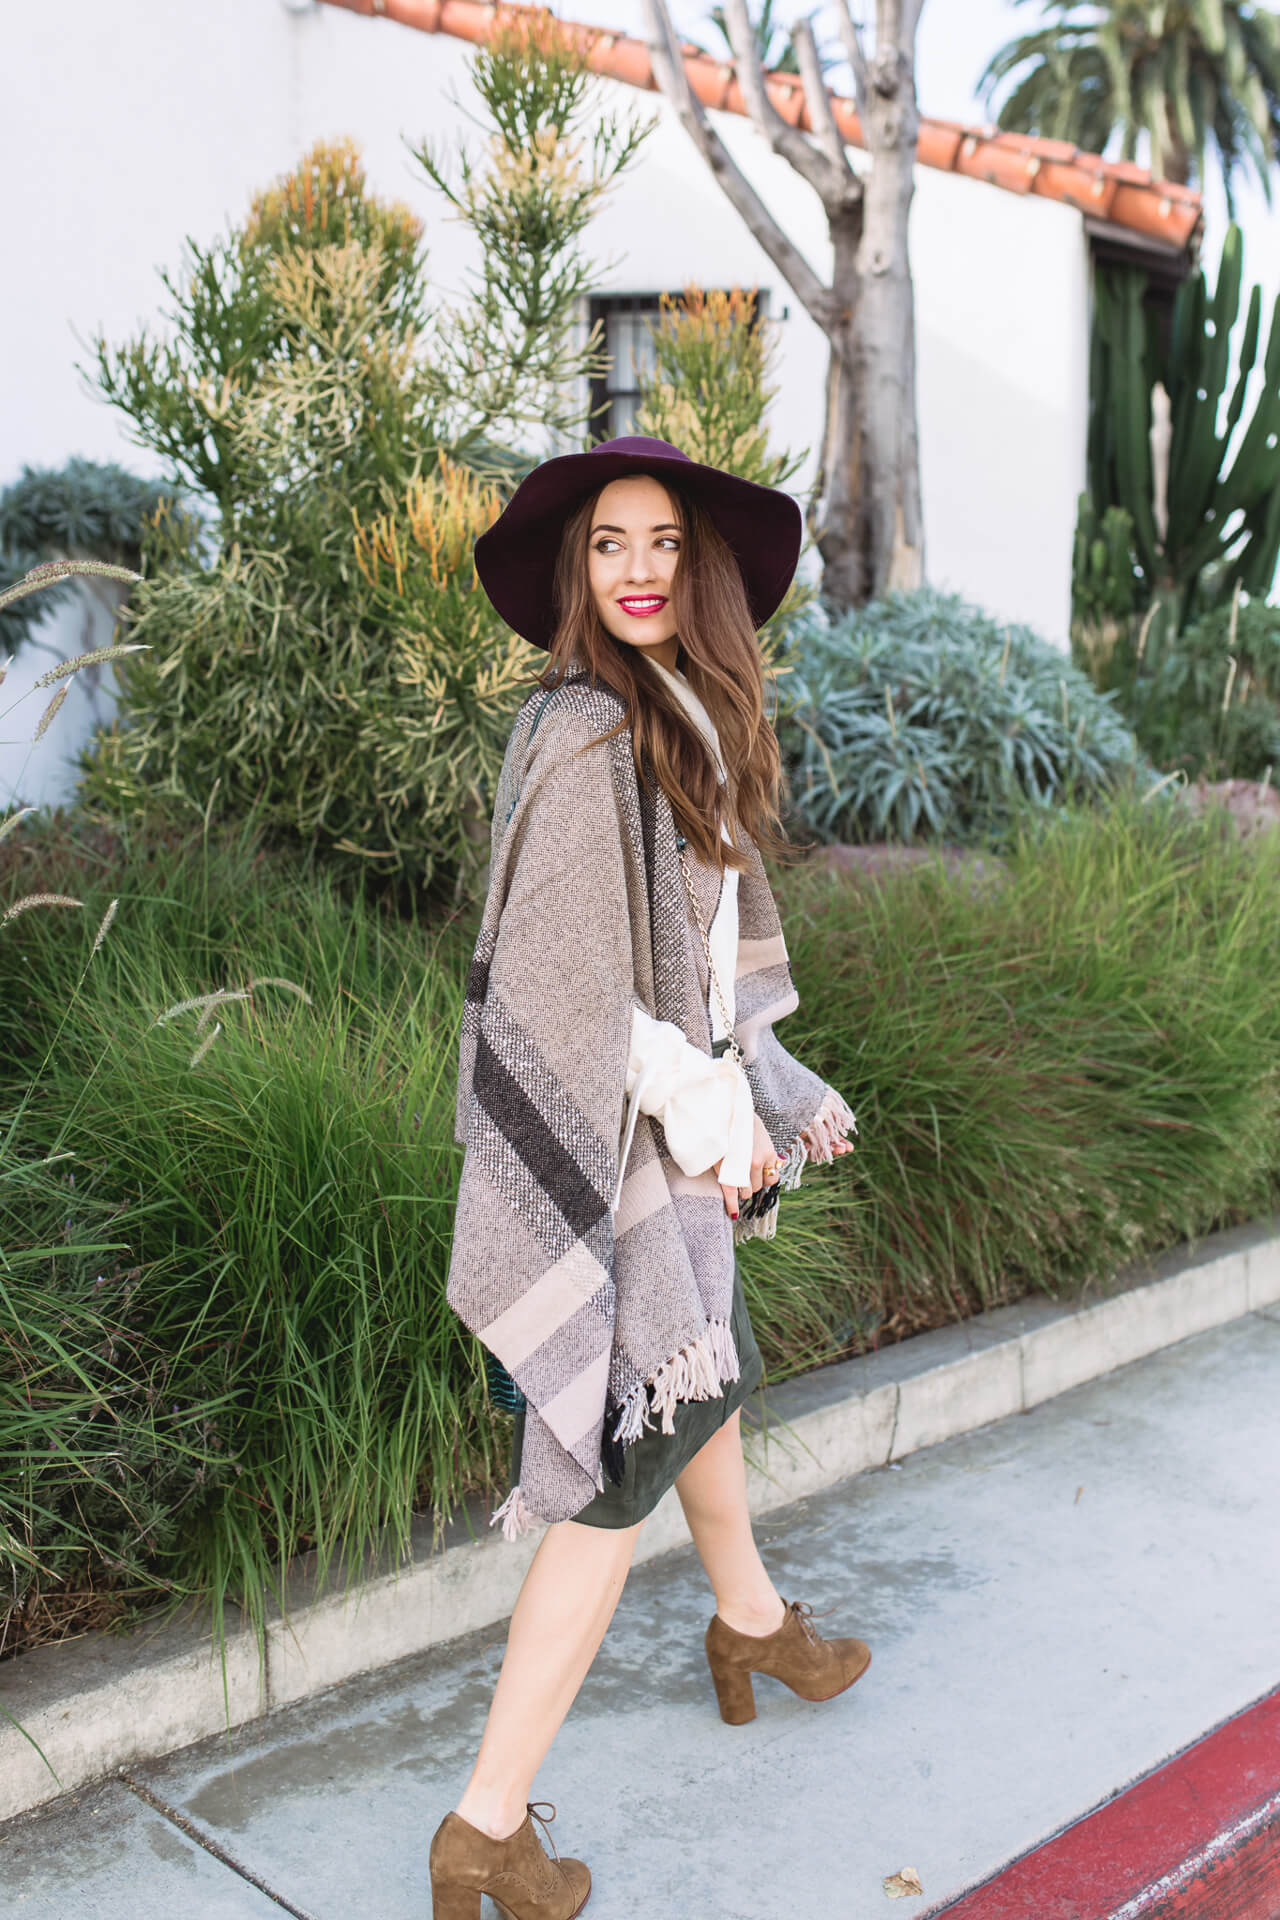 craving Fall weather in this plaid poncho - M Loves M @marmar